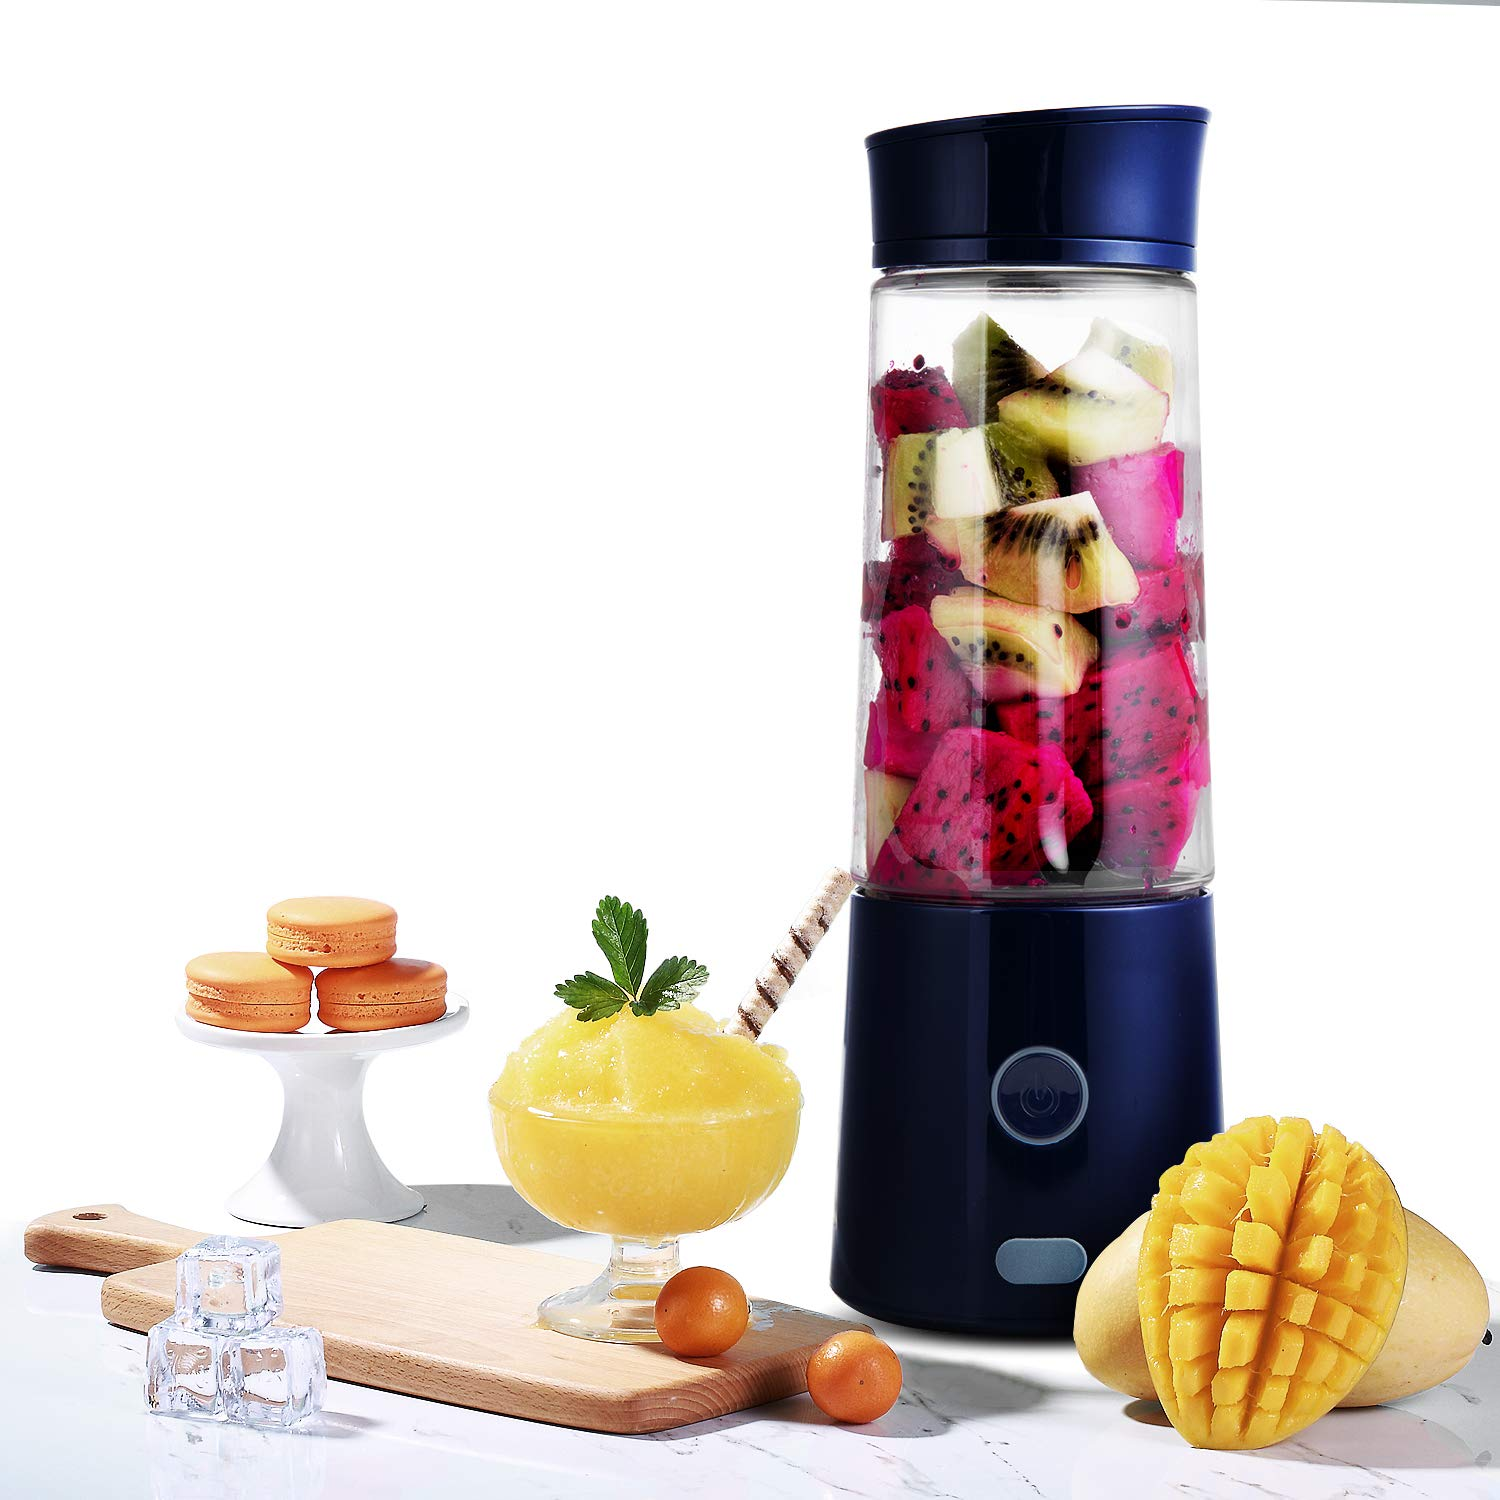 Portable Blender, Kacsoo M620 Mini Blender Personal Smoothie Fruit Mixer Juicer Cup, Single Serve USB Rechargeable Travel Blender for Shakes and Smoothies, with 5200 mAh Rechargeable Battery Blue